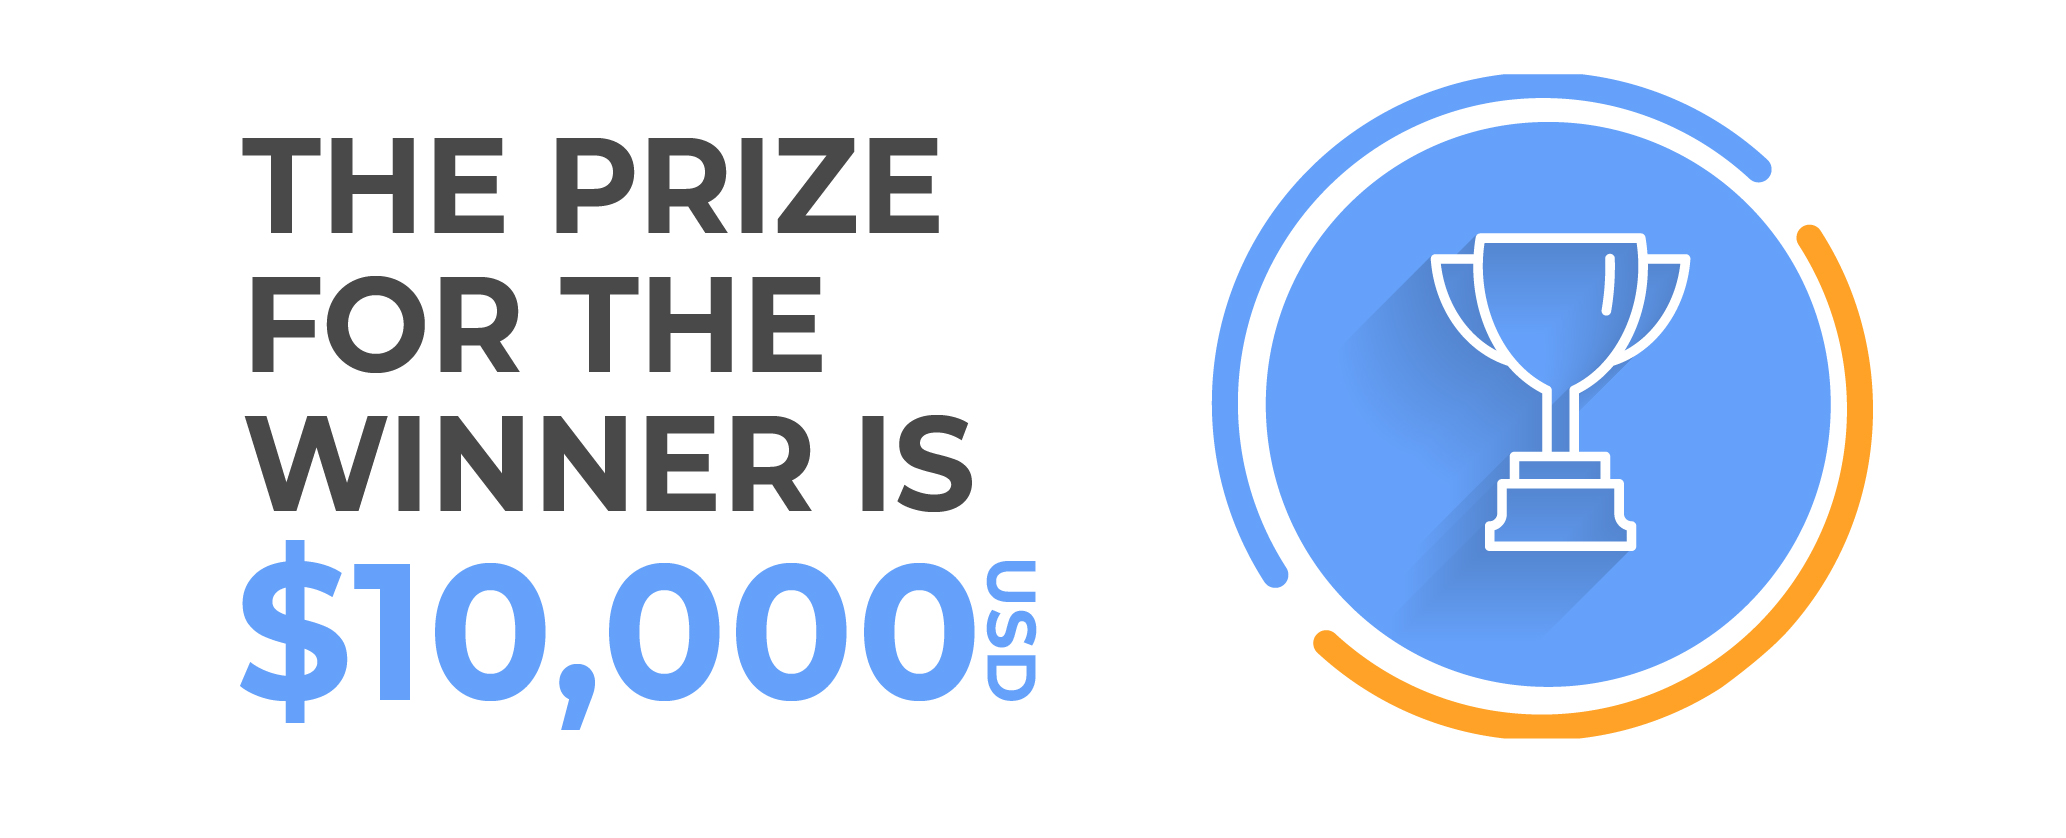 Prize of 10000 usd for the competition winners